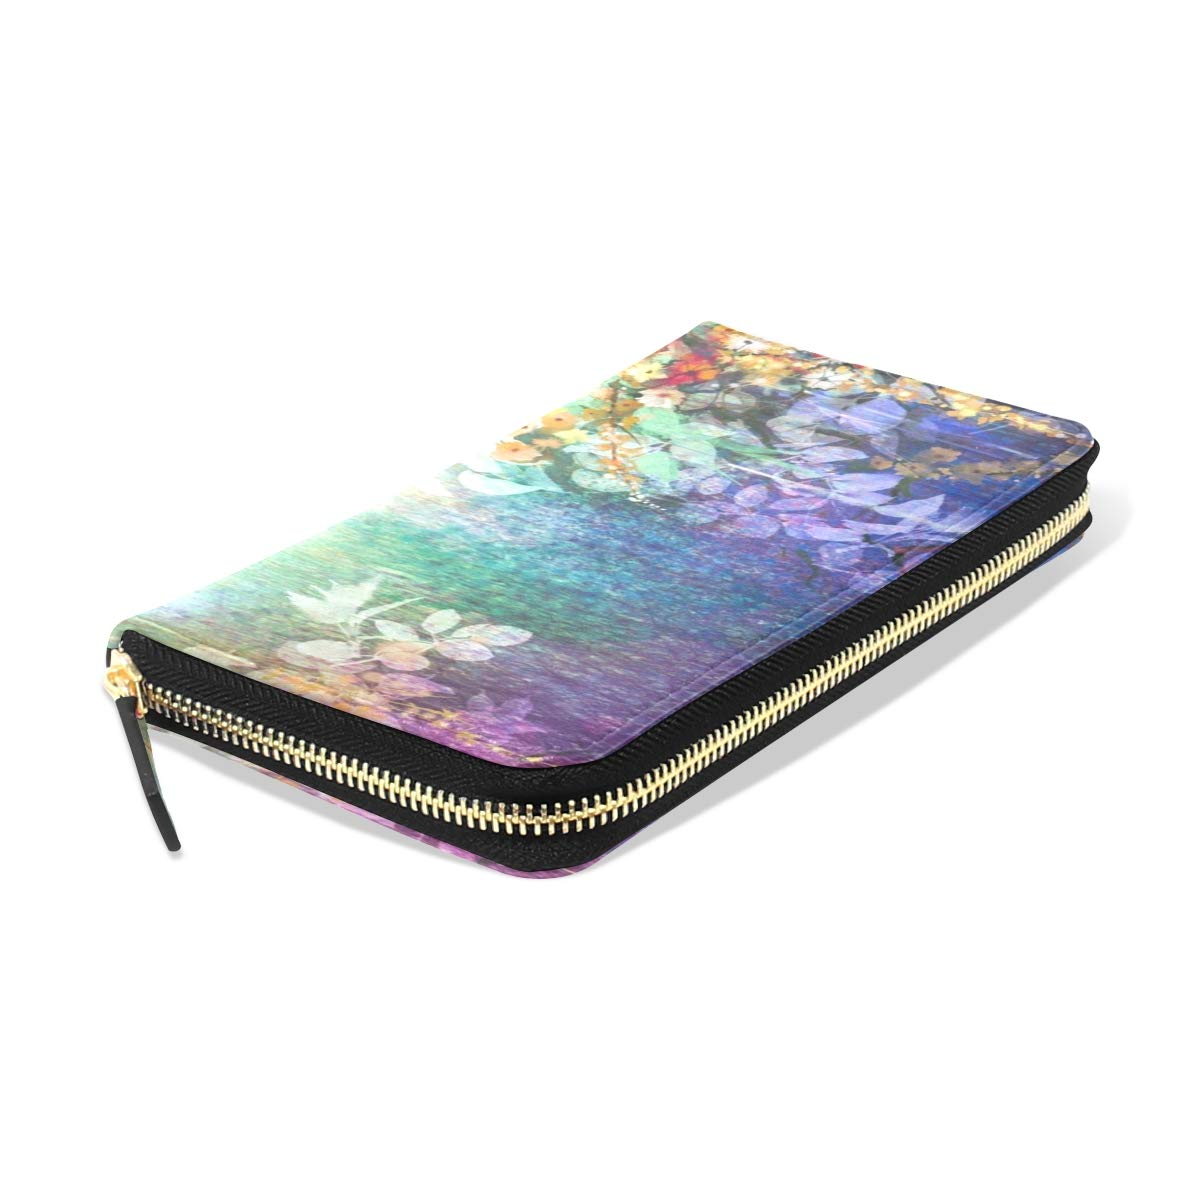 Womens Wallets Vintage Watercolor Ivy Flowers Leather Passport Wallet Change Coin Purse Girls Handbags